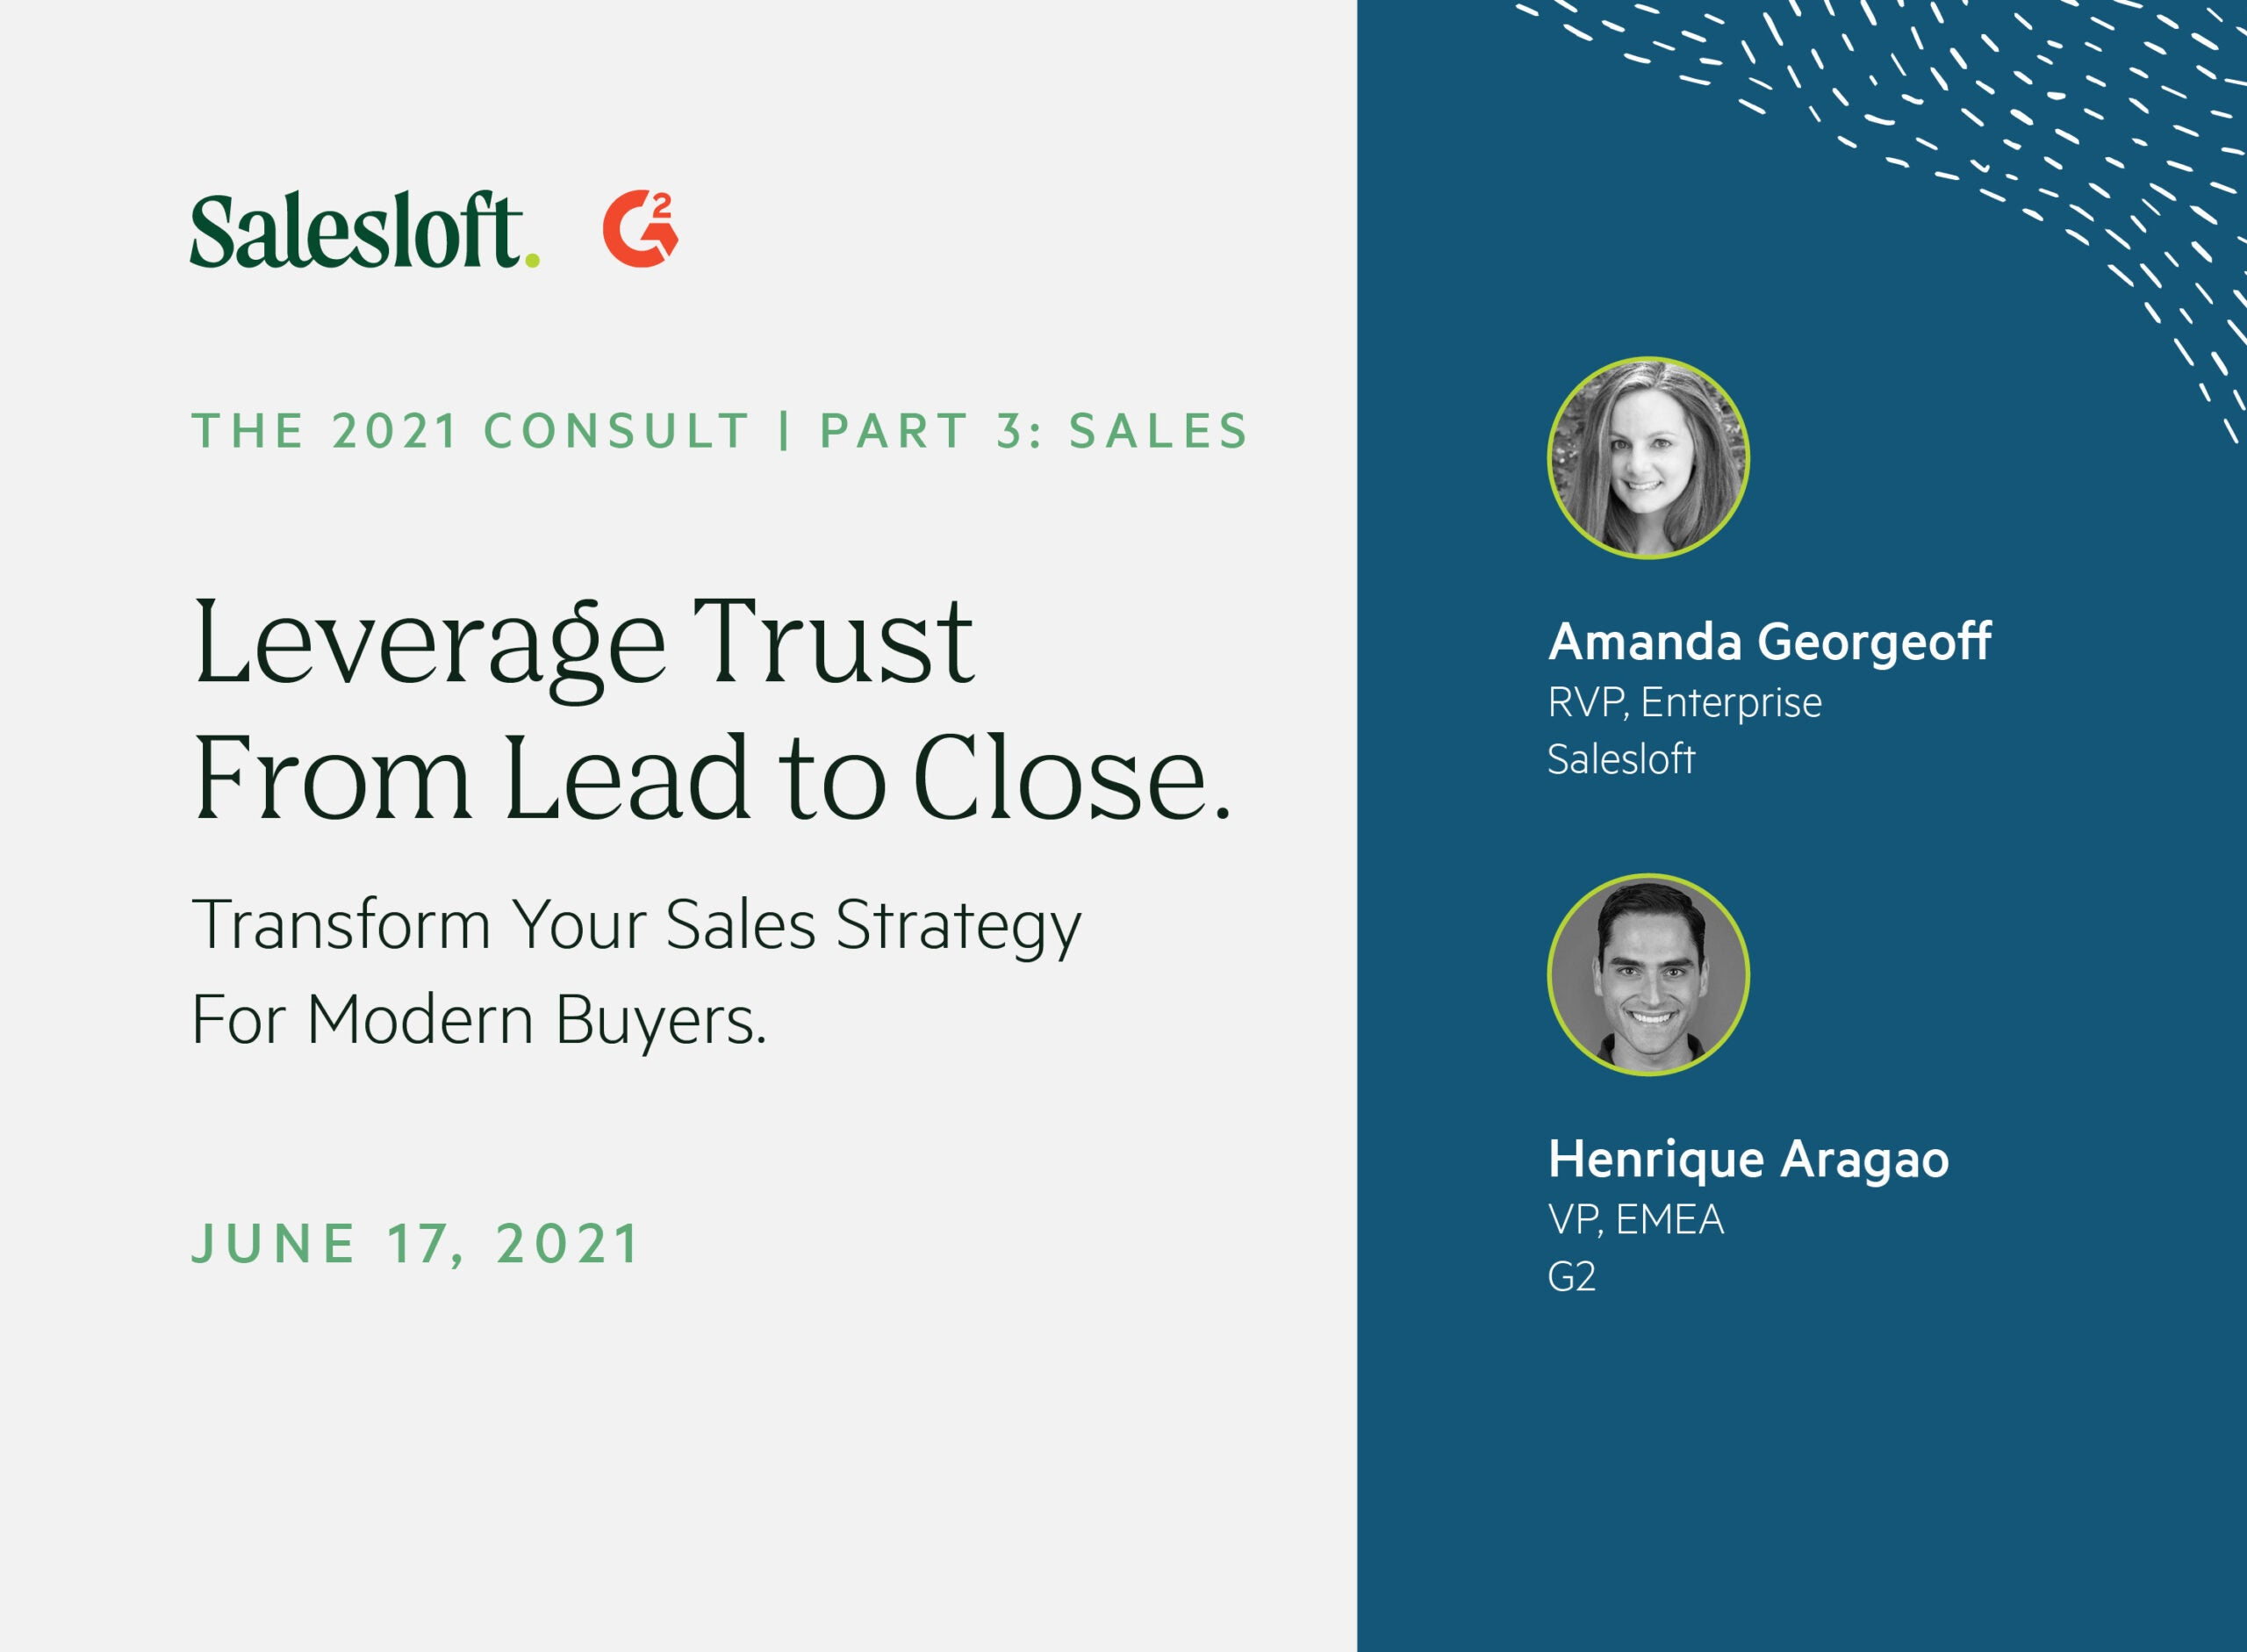 Leverage Trust From Lead To Close